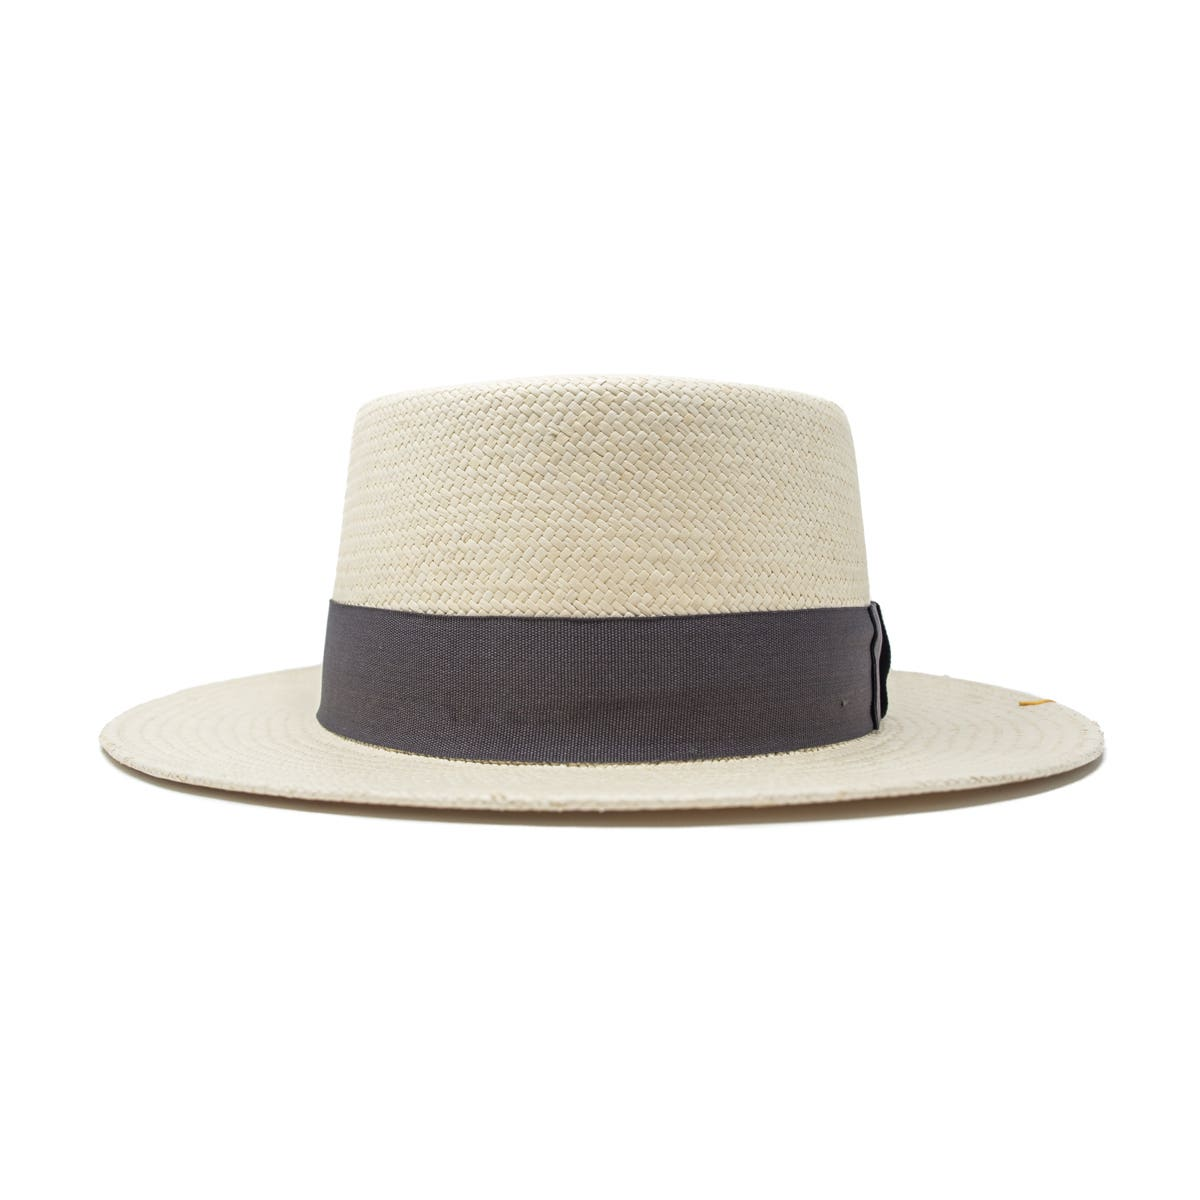 Quito Panama Boater Hat - Natural